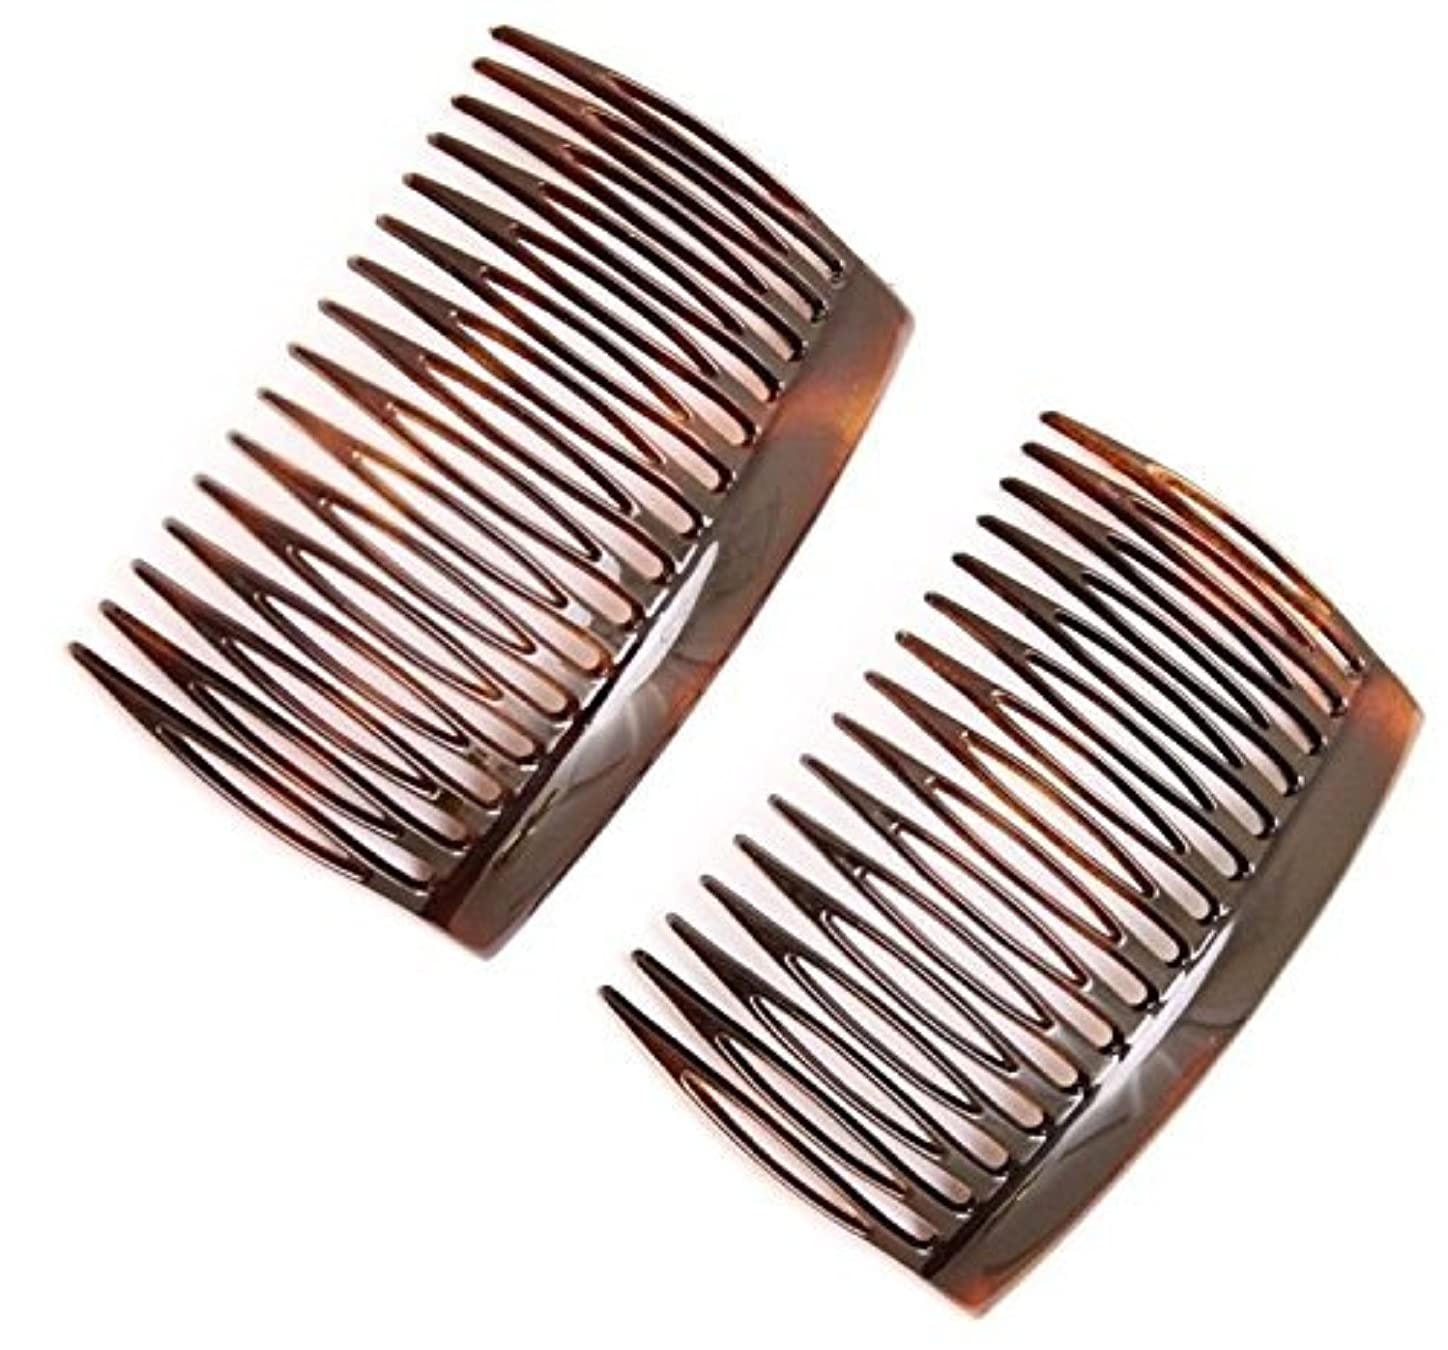 ドリルお金ゴム非常に怒っていますParcelona French 2 Pieces Glossy Celluloid Shell Good Grip Updo 16 Teeth Hair Side Combs -2.75 Inches (2 Pcs)...